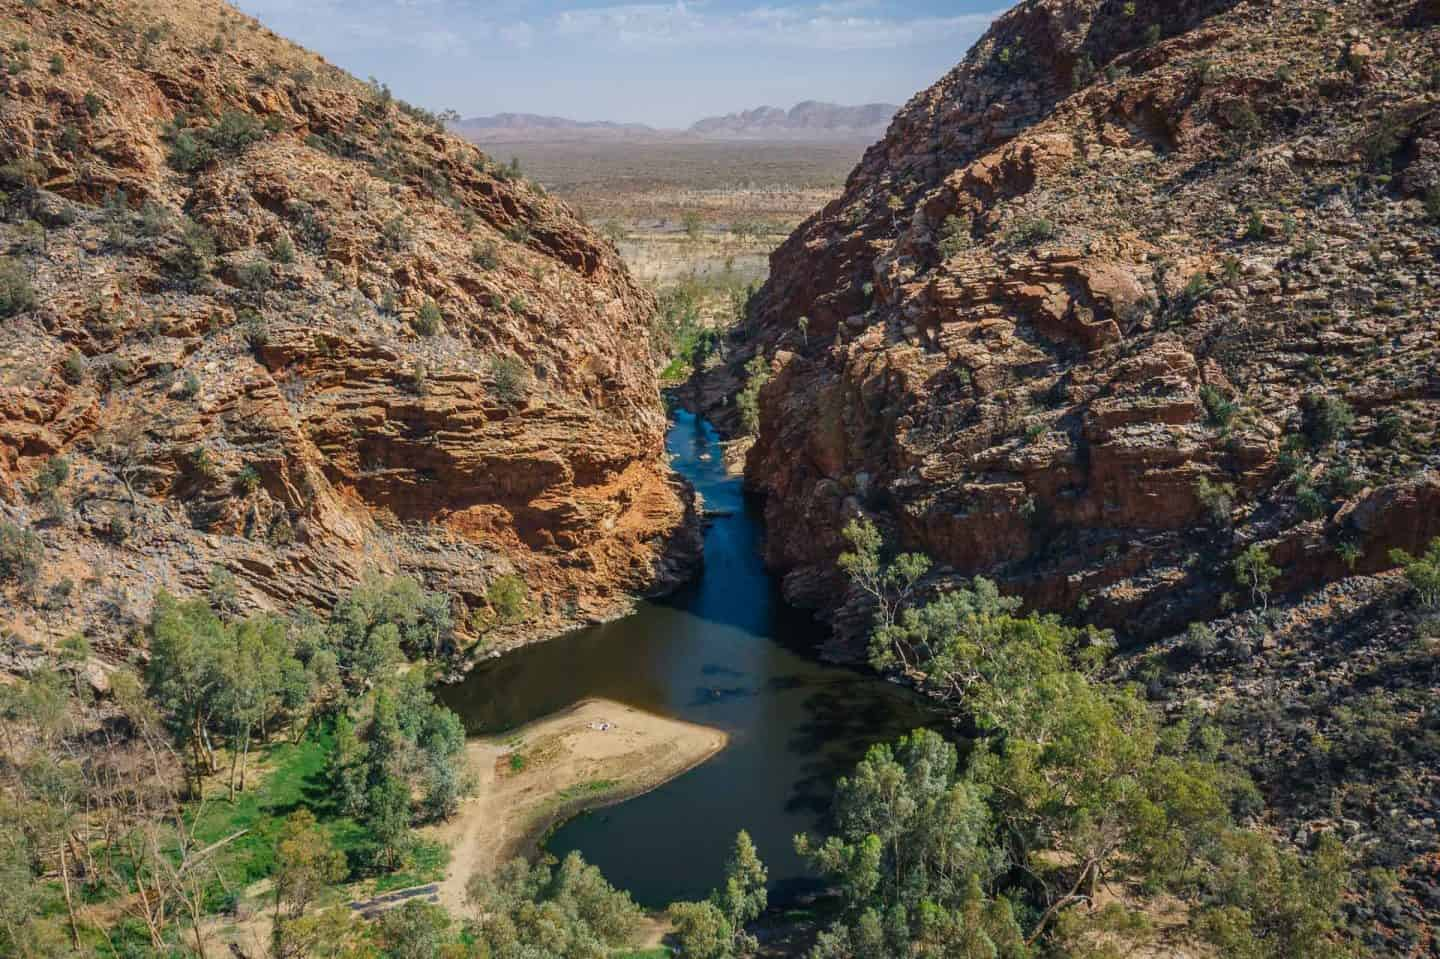 things to do in alice springs, what to do in alice springs, alice springs attractions, ellery creek big hole